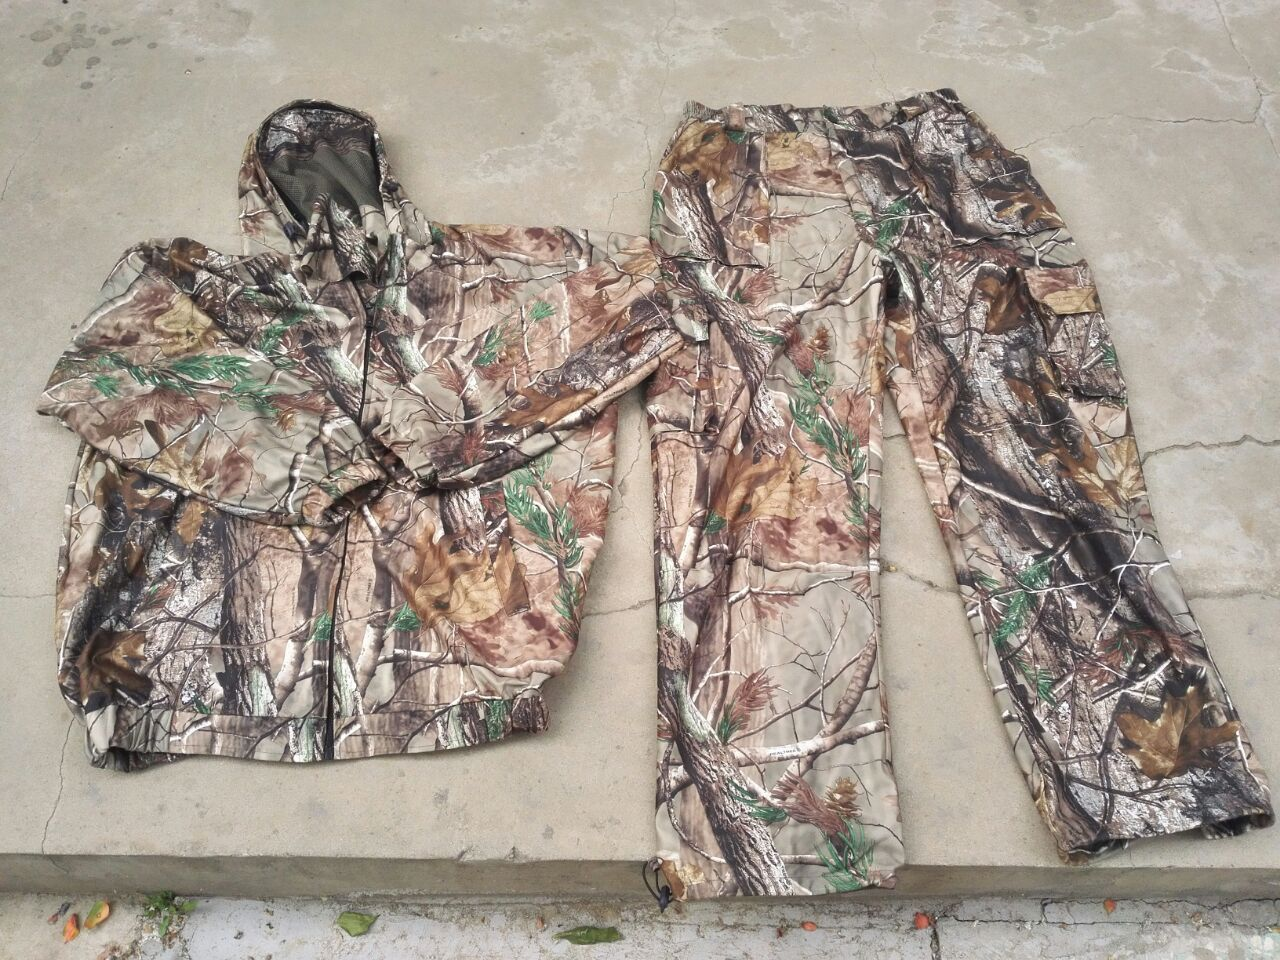 2017 new Forest ClothesThe Leaves Clothing Camouflage Suit Leaves Men  Hunting Clothing Sports Clothing2017 new Forest ClothesThe Leaves Clothing Camouflage Suit Leaves Men  Hunting Clothing Sports Clothing